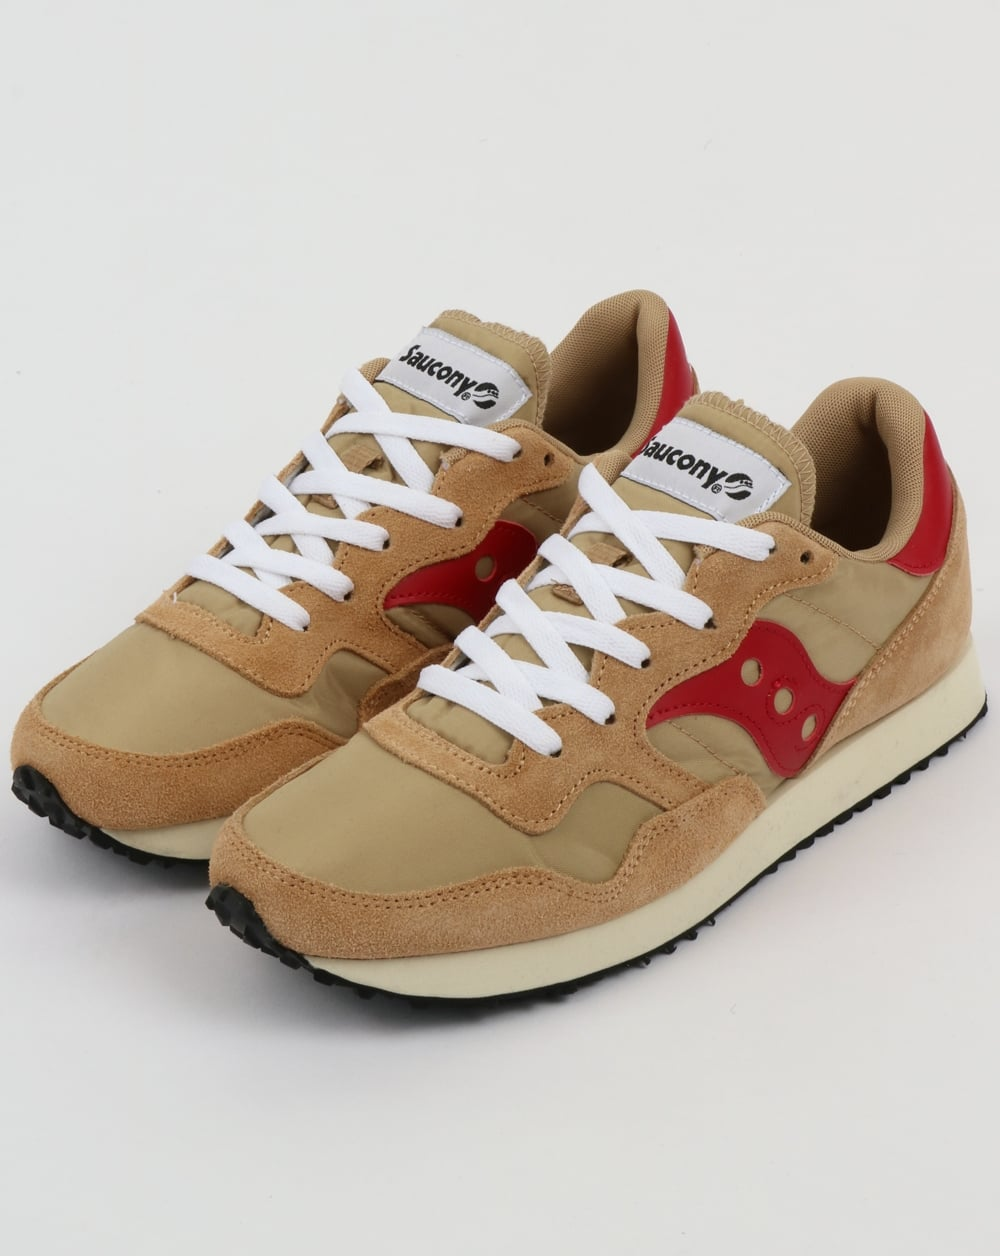 d76b9583edd8 Saucony DXN Vintage Trainers Tan Red